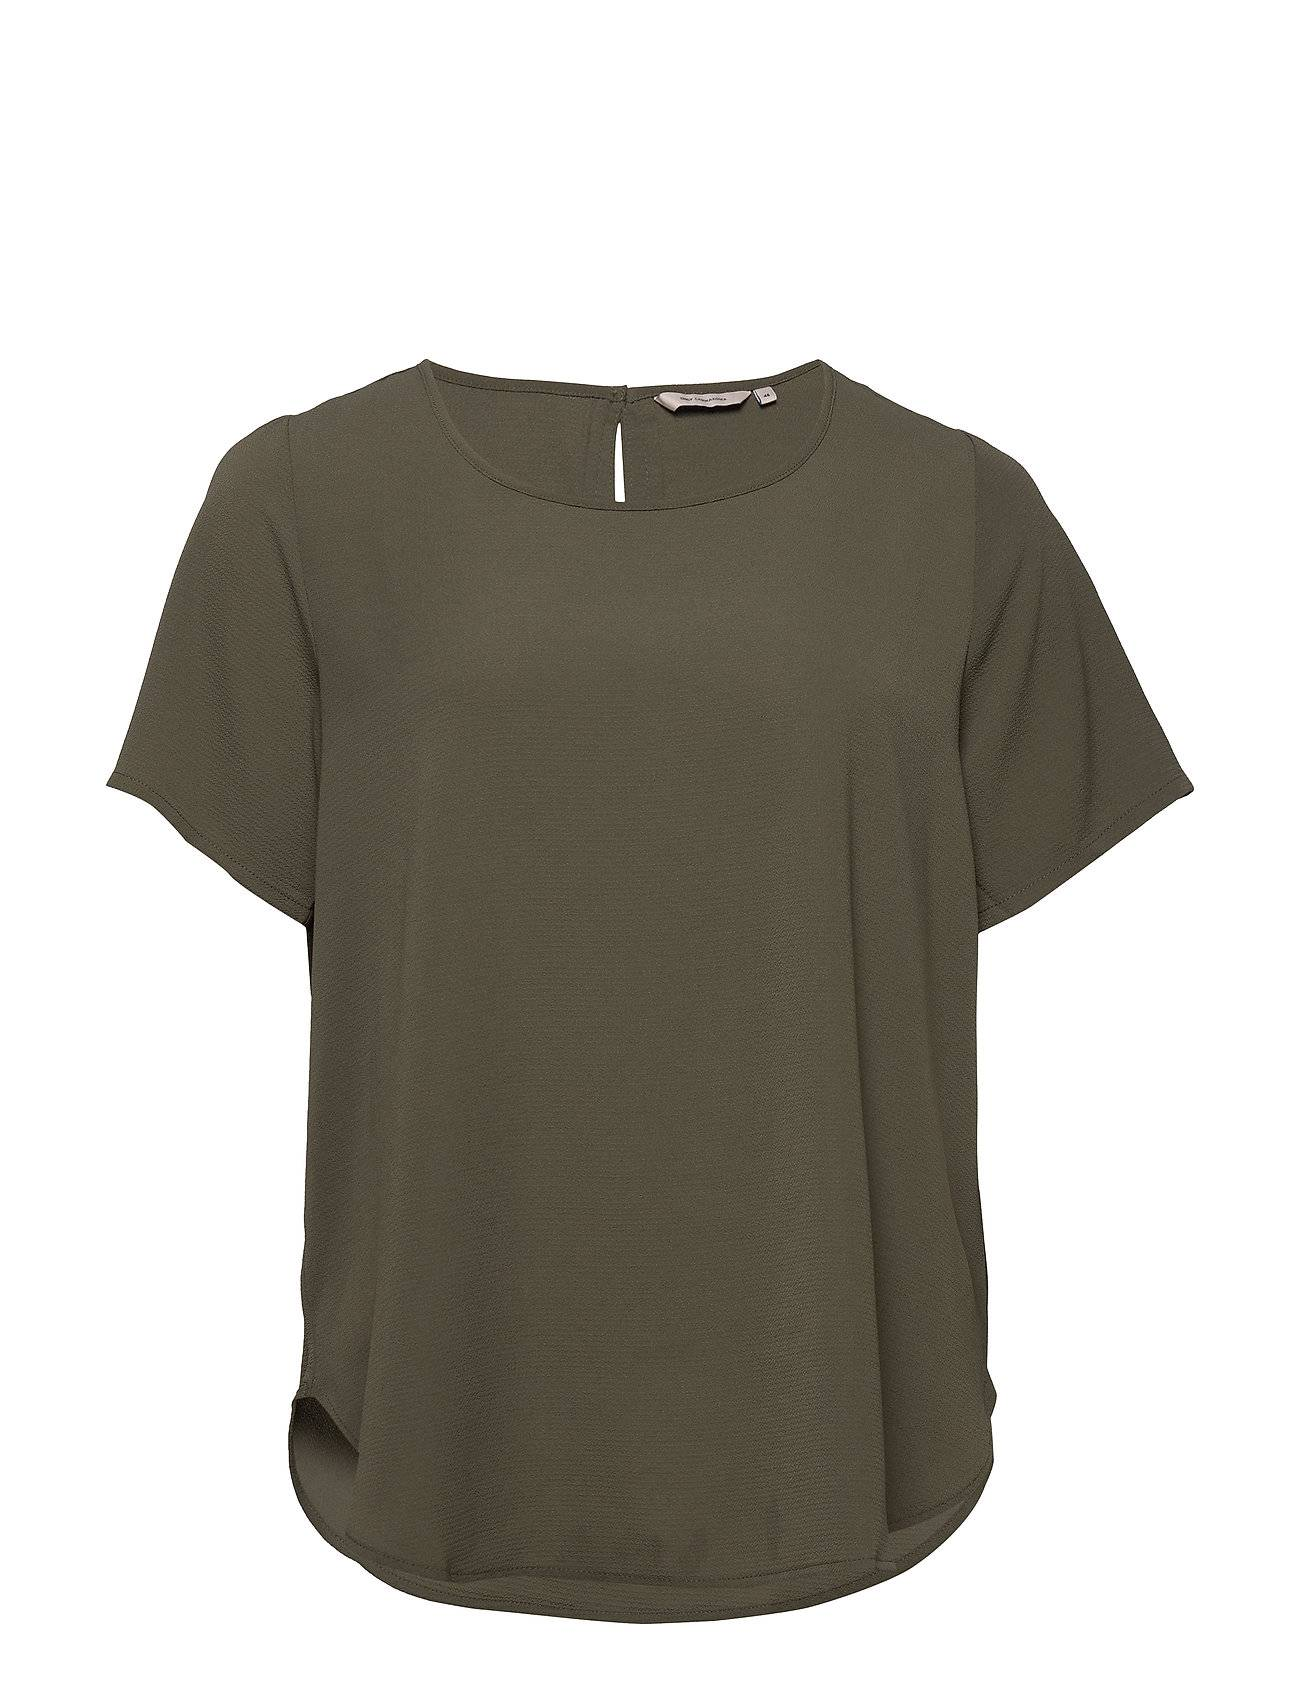 ONLY Carmakoma Carluxmai Ss Top Solid T-shirts & Tops Short-sleeved Vihreä ONLY Carmakoma